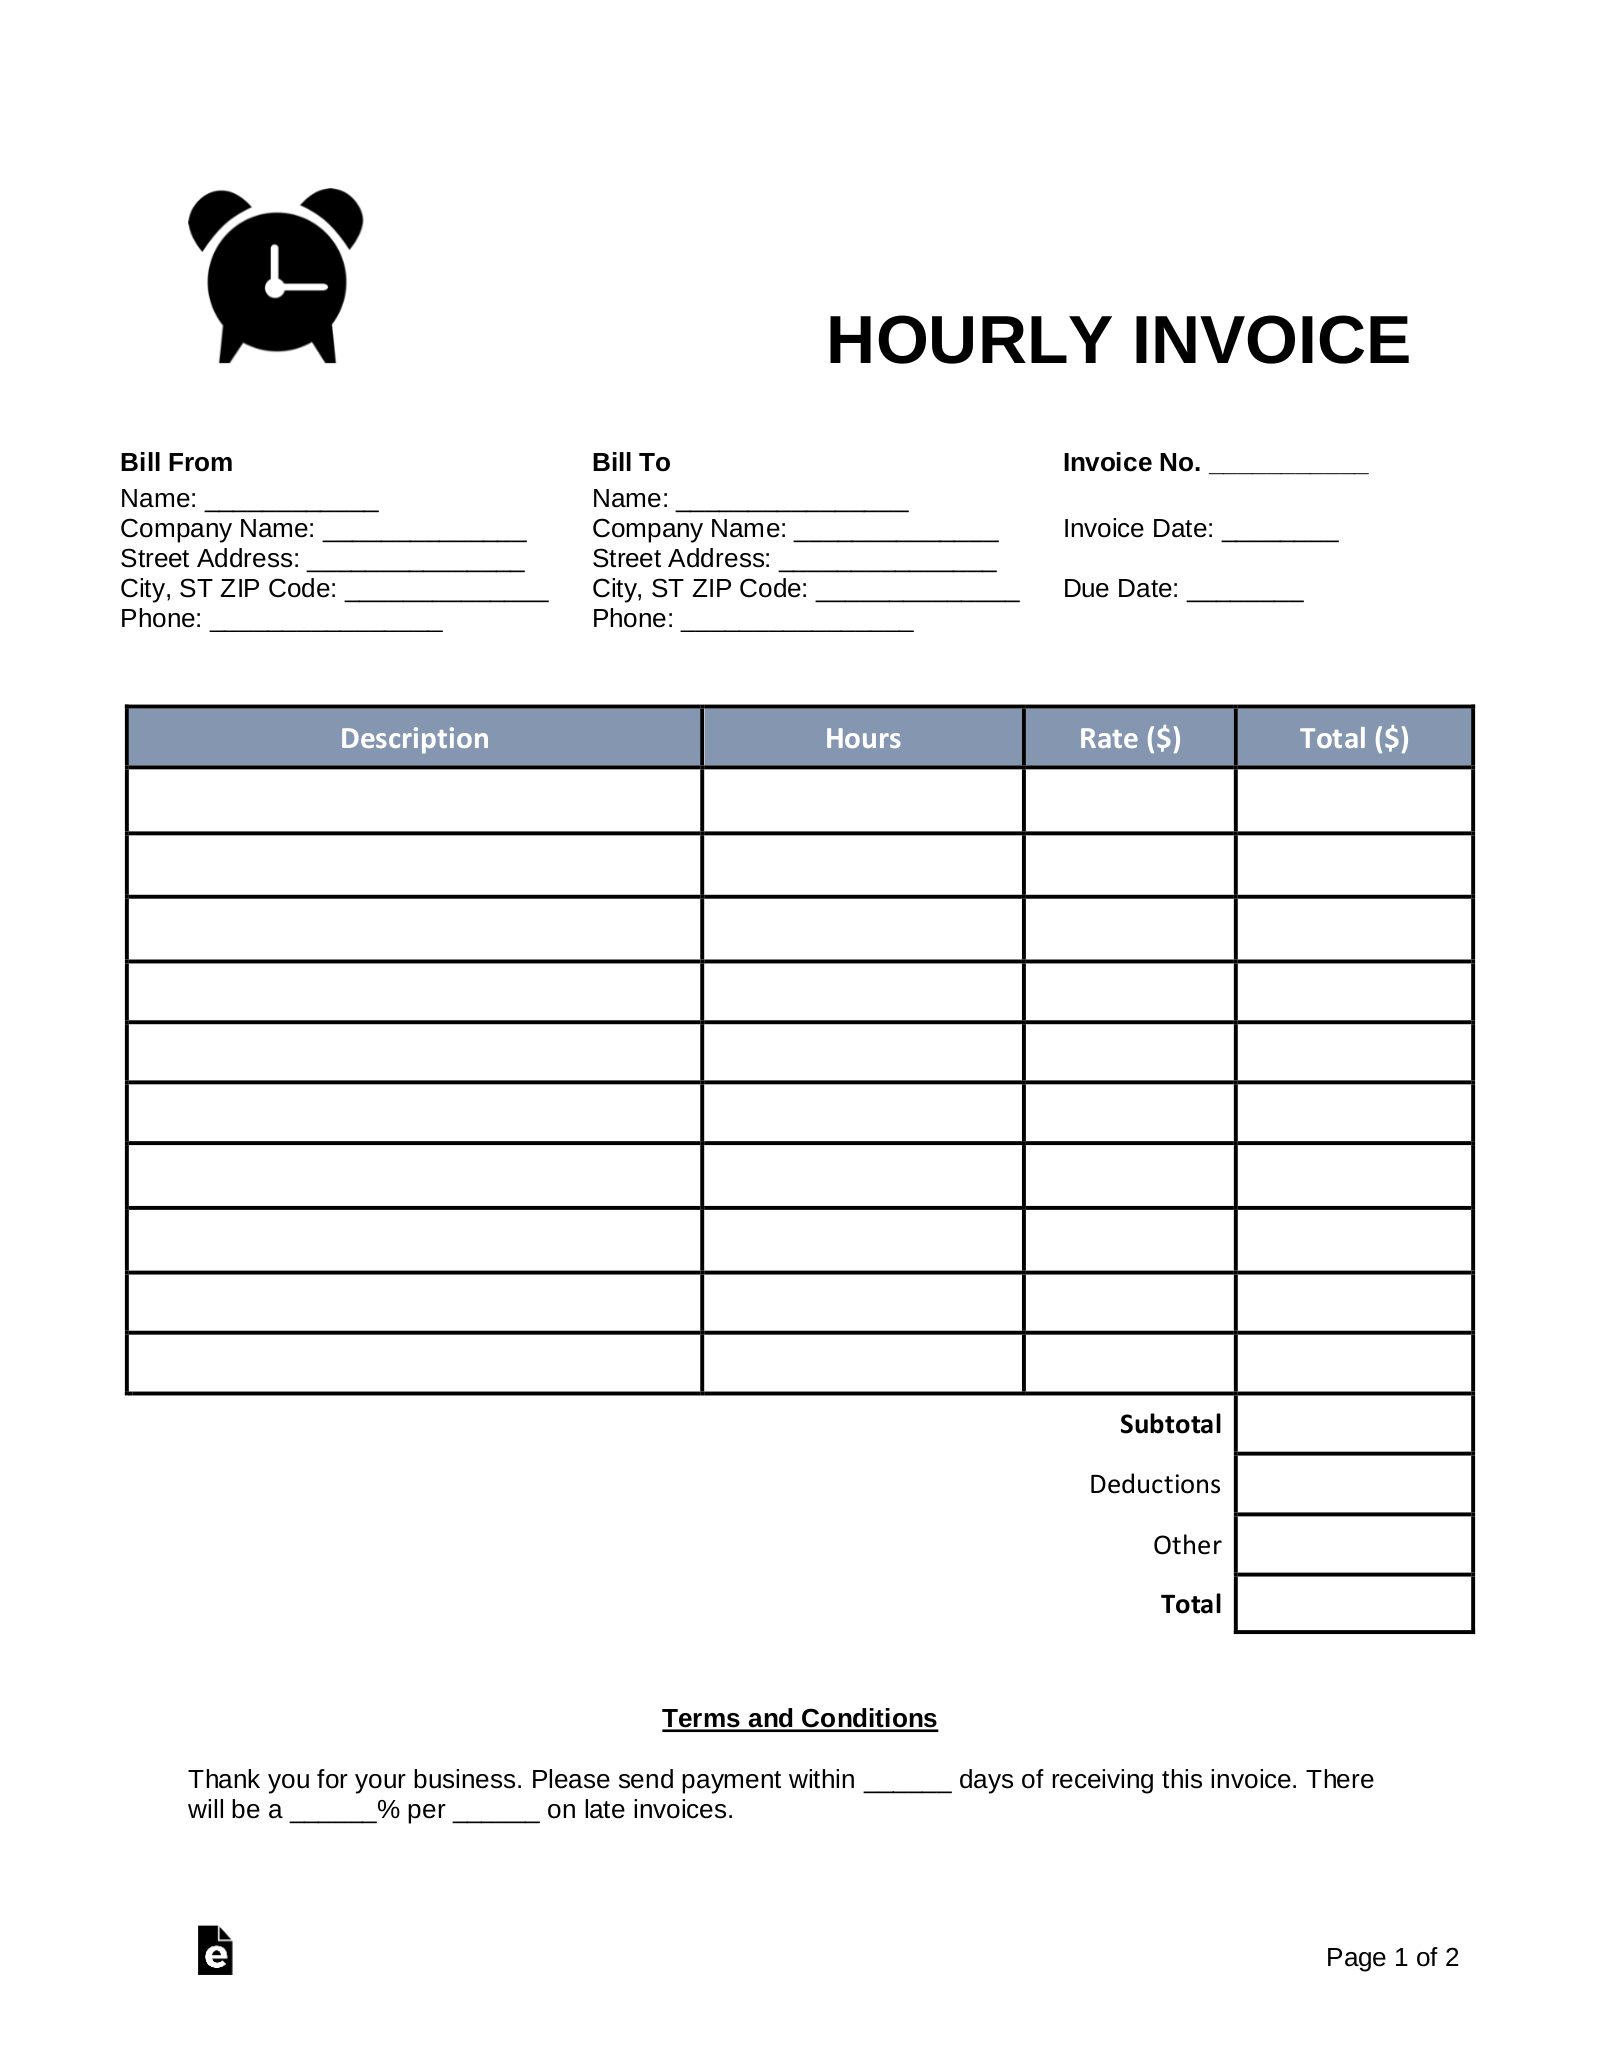 hourly-invoice-template  Form Examples on